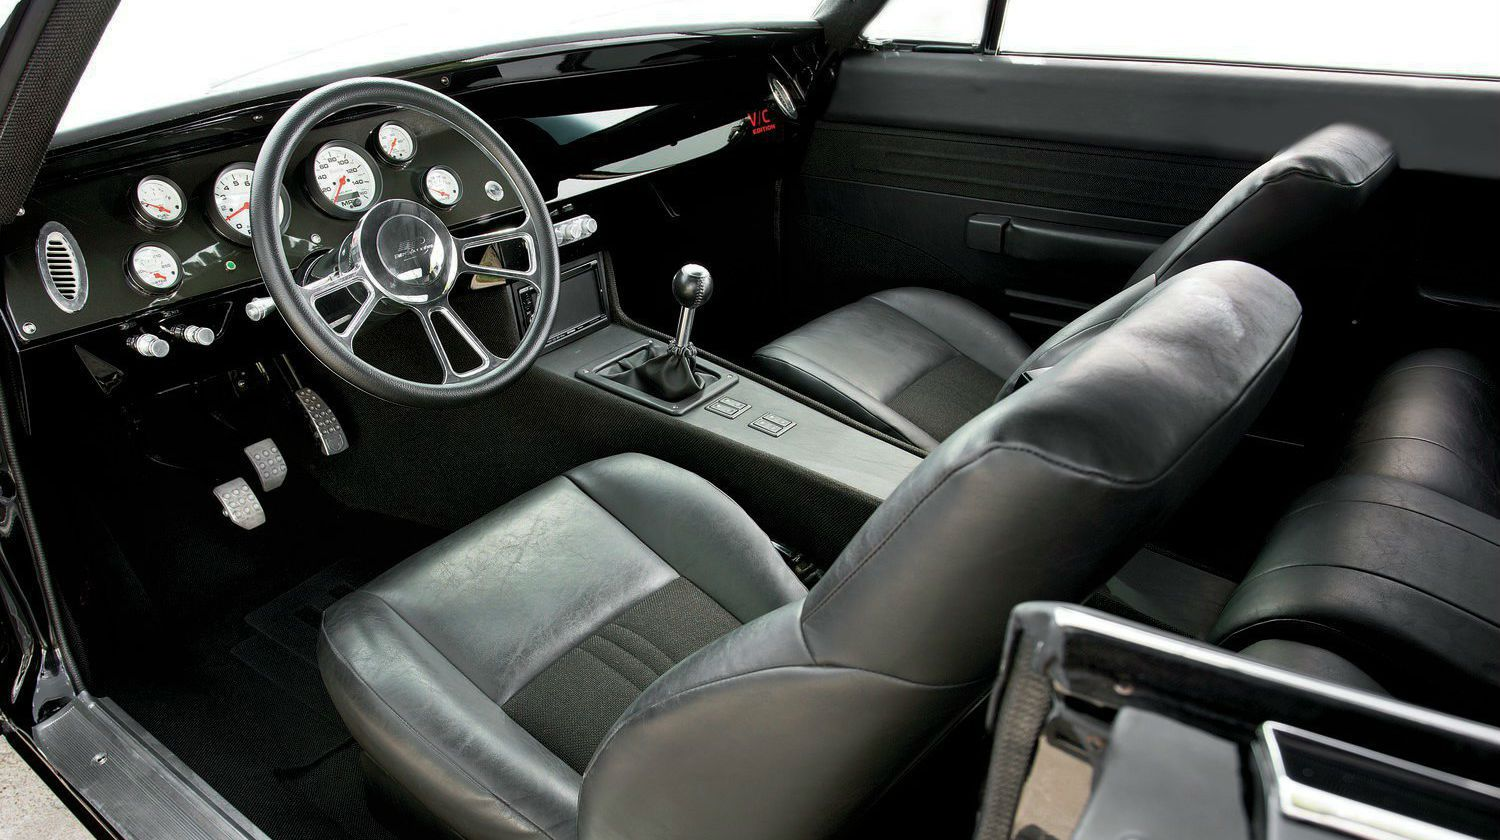 Dodge dodge charger rt horsepower : 1970 Dodge Charger RT | TENTH PICK 1970 CHARGER | Pinterest ...